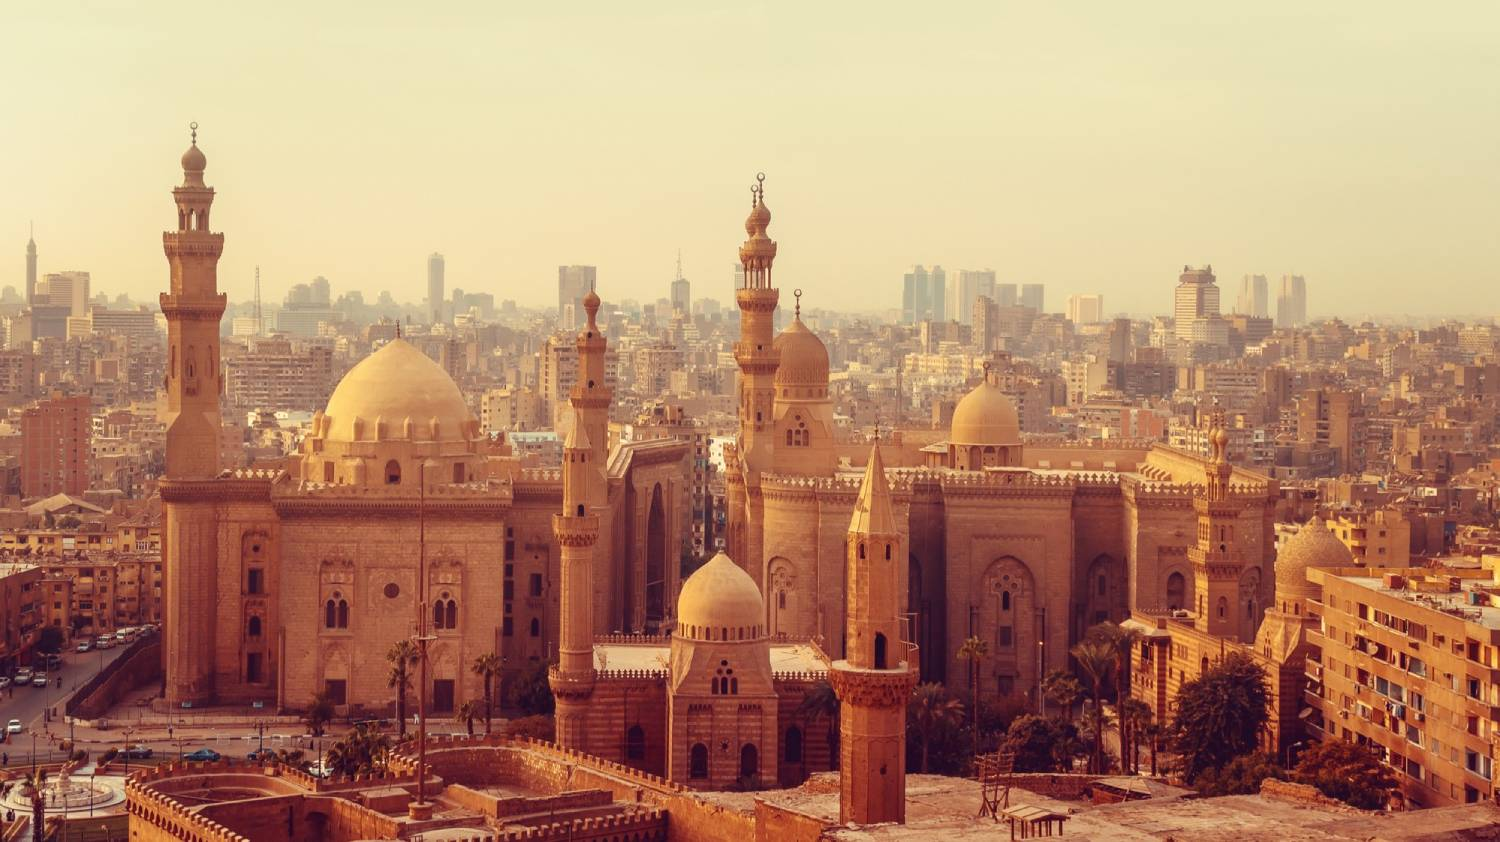 Old Cairo - Things To Do In Cairo